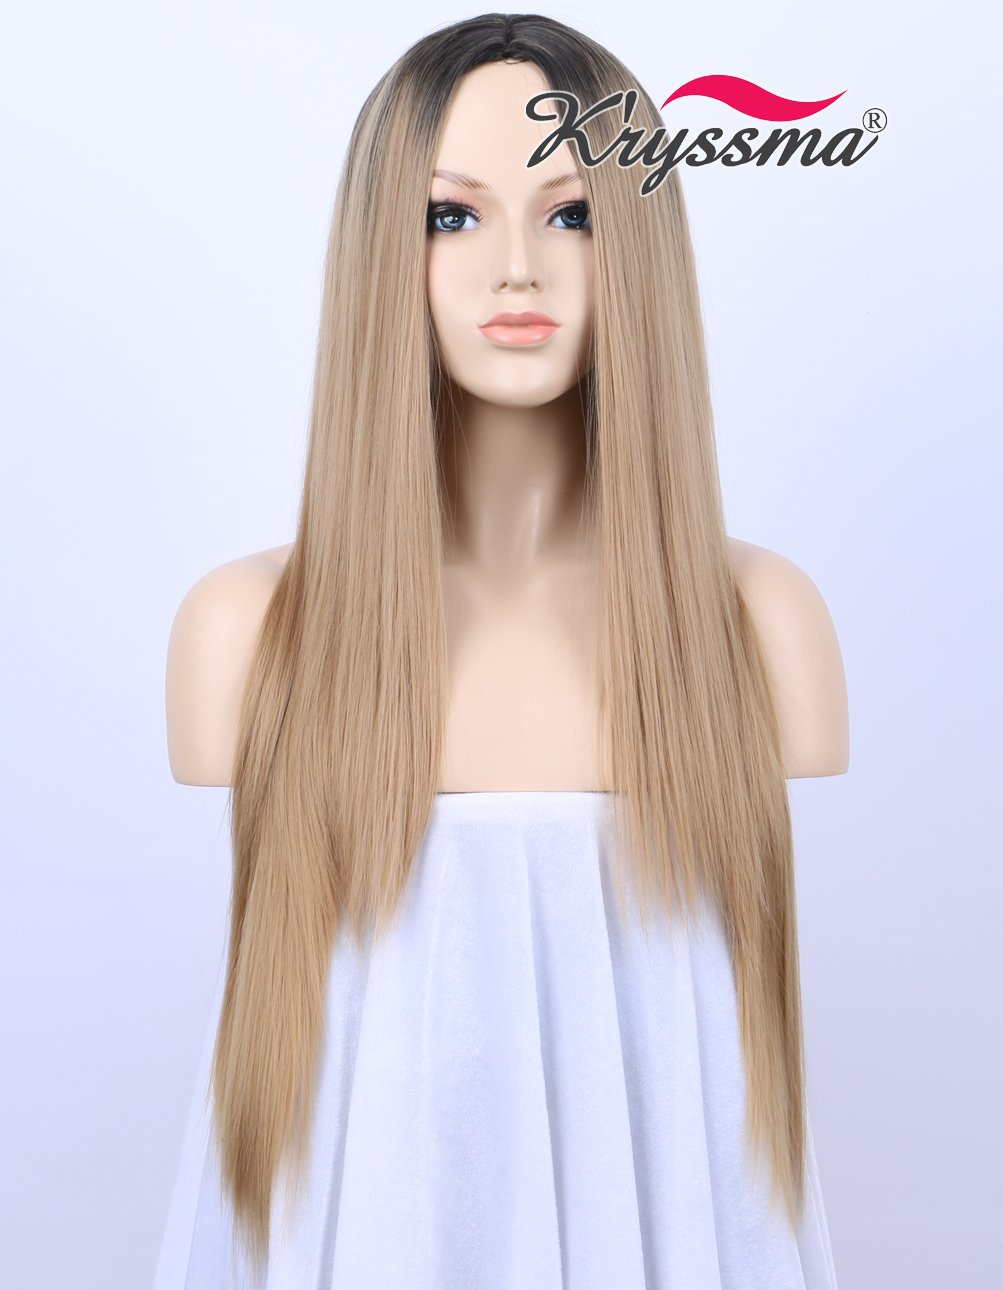 K'ryssma Black Rooted Honey Blonde Wig Natural Looking Middle Part Ombre Synthetic Wigs for Women Long Silky Straight Cheap Hair Replacement 22 inches K' ryssma